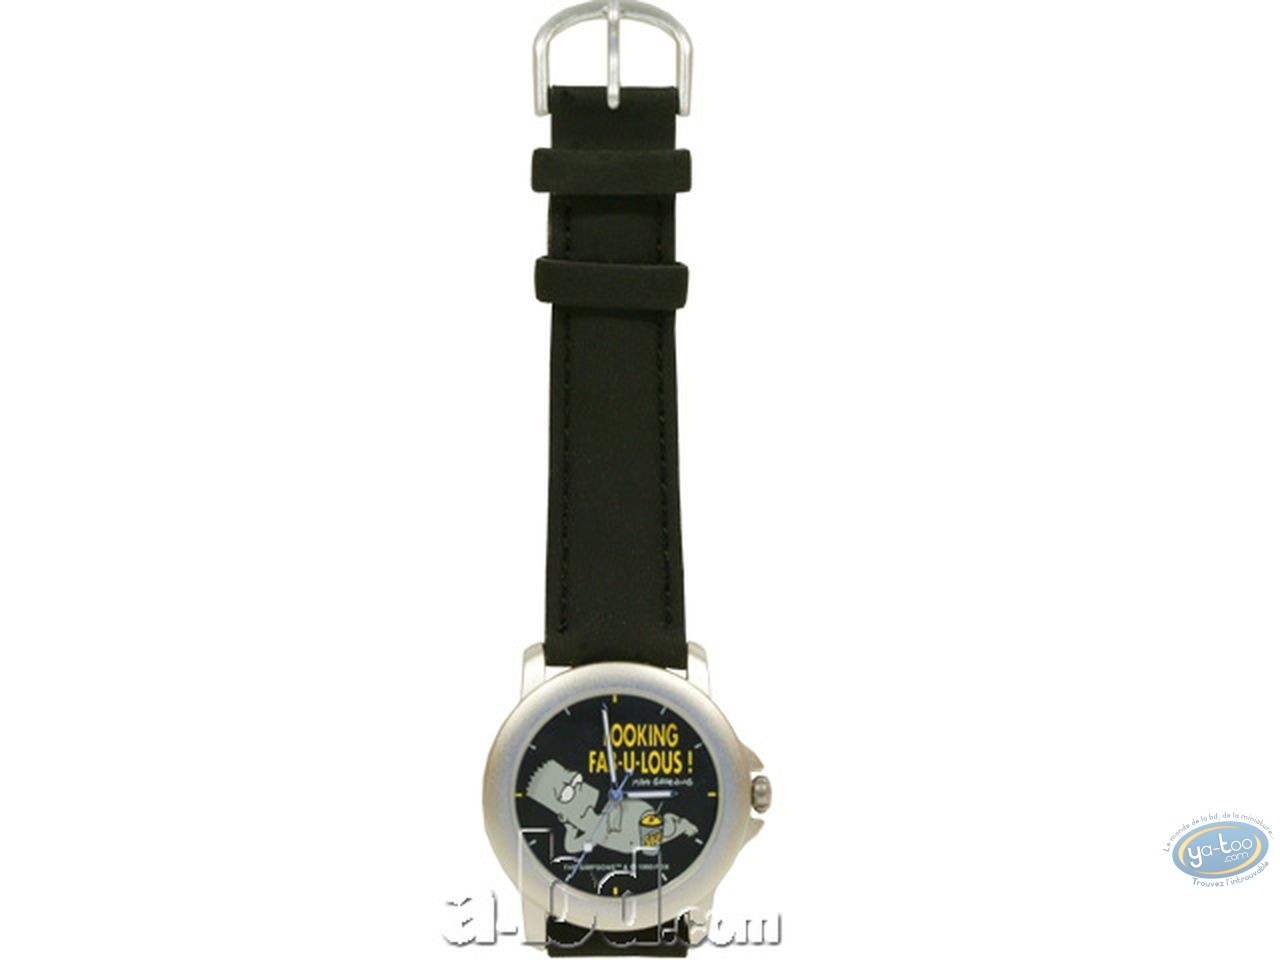 Clocks & Watches, Simpson (Les) : Watch, The Simpsons : Bart fabulous (leather strap)